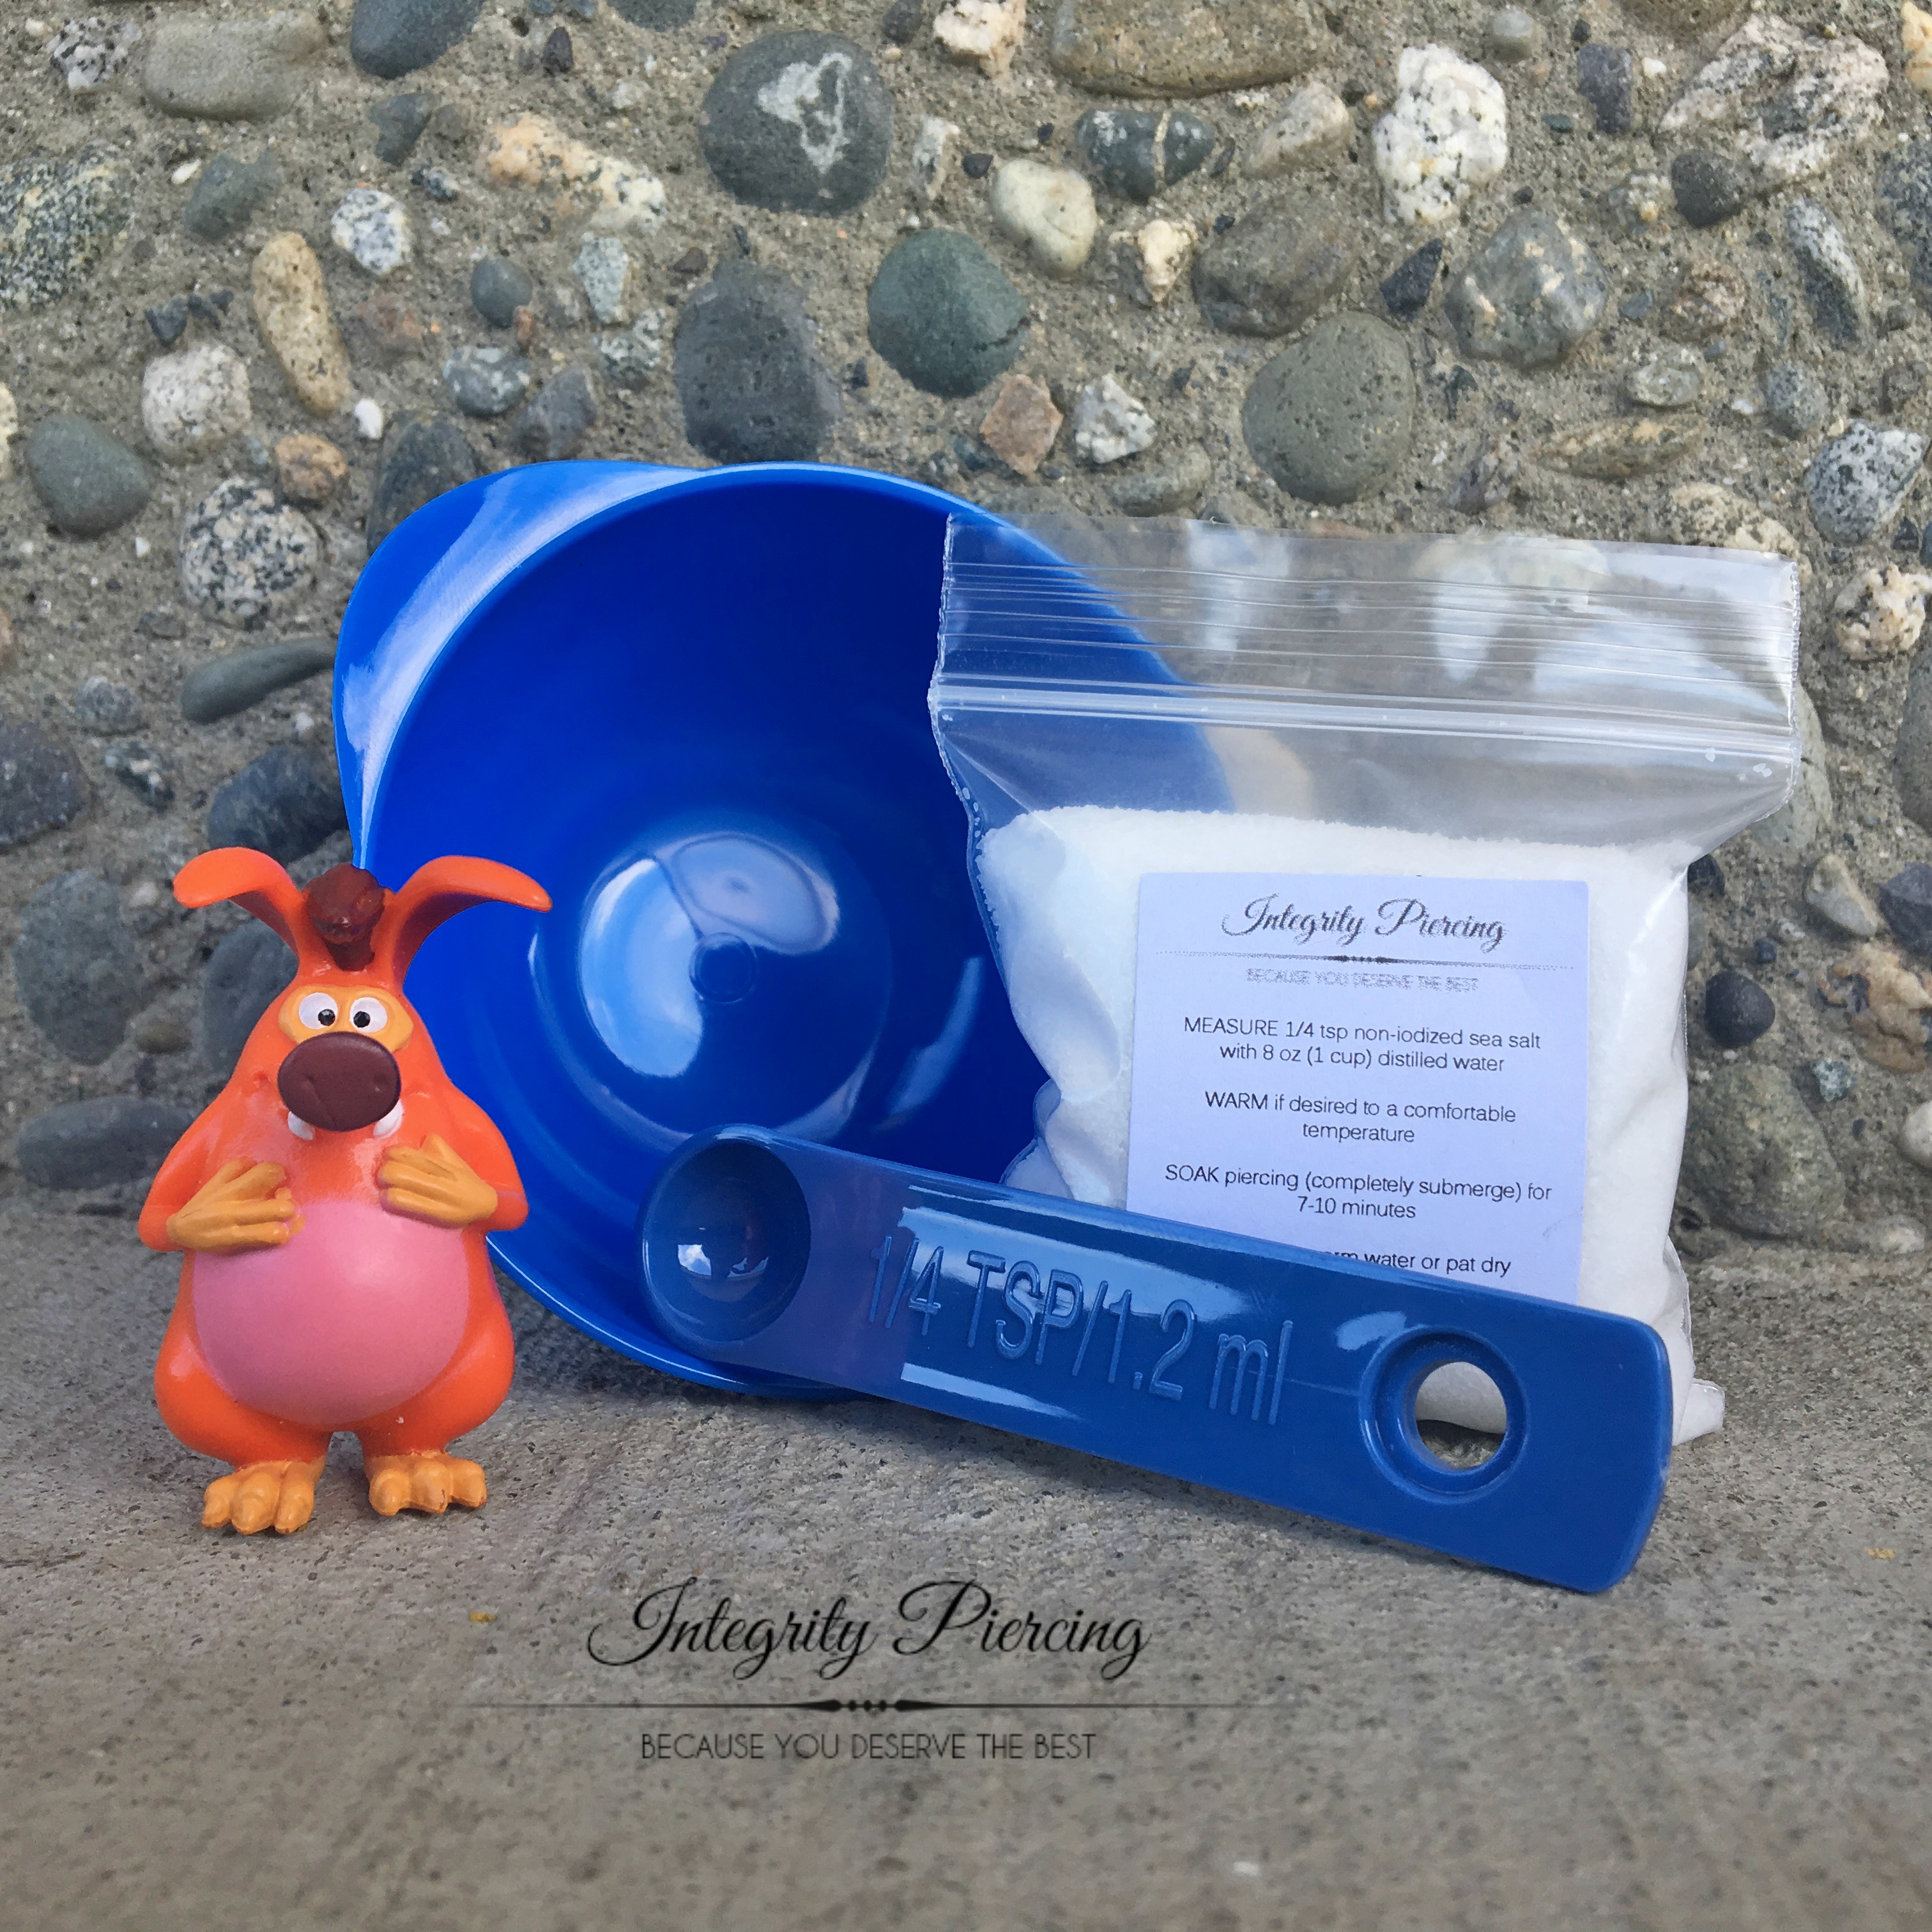 Soaking Kit Integrity Piercing Online Store Powered By Storenvy